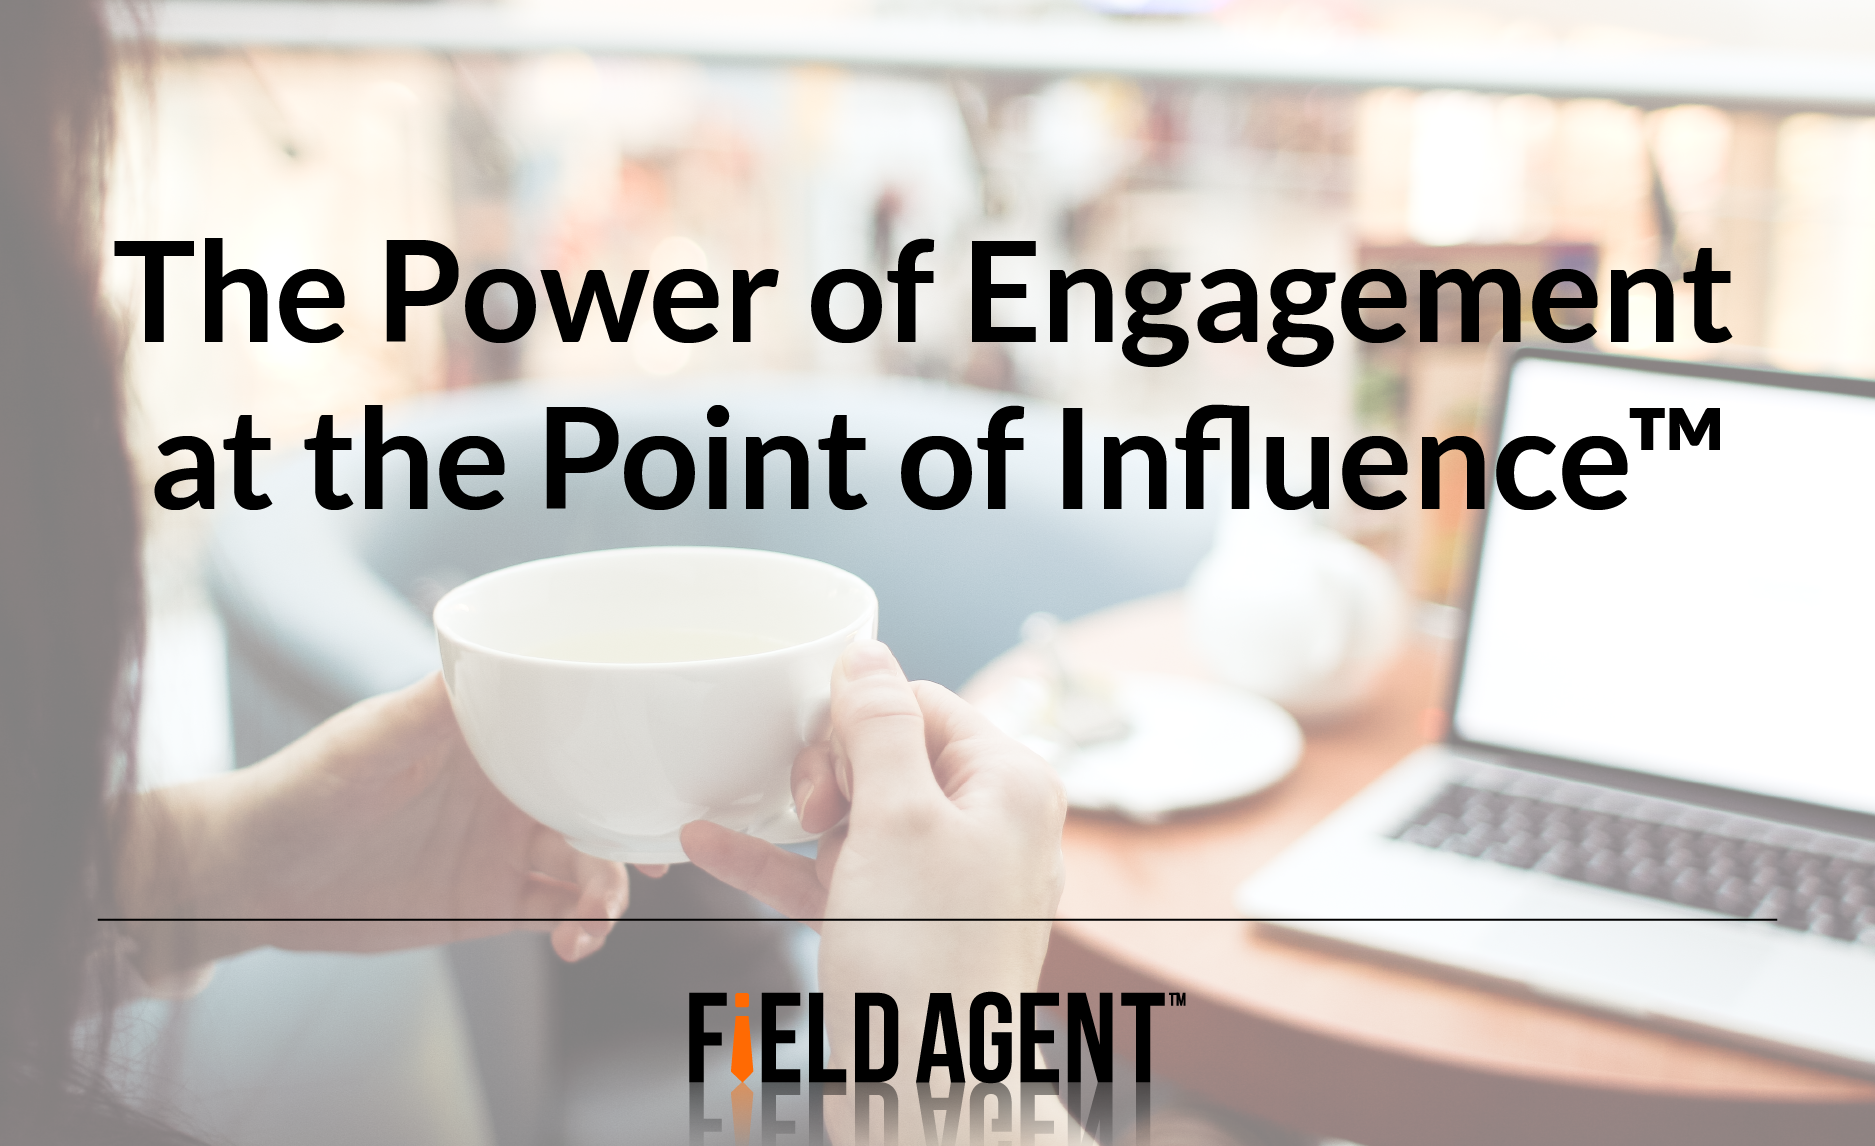 The Power of Engagement at the Point of Influence